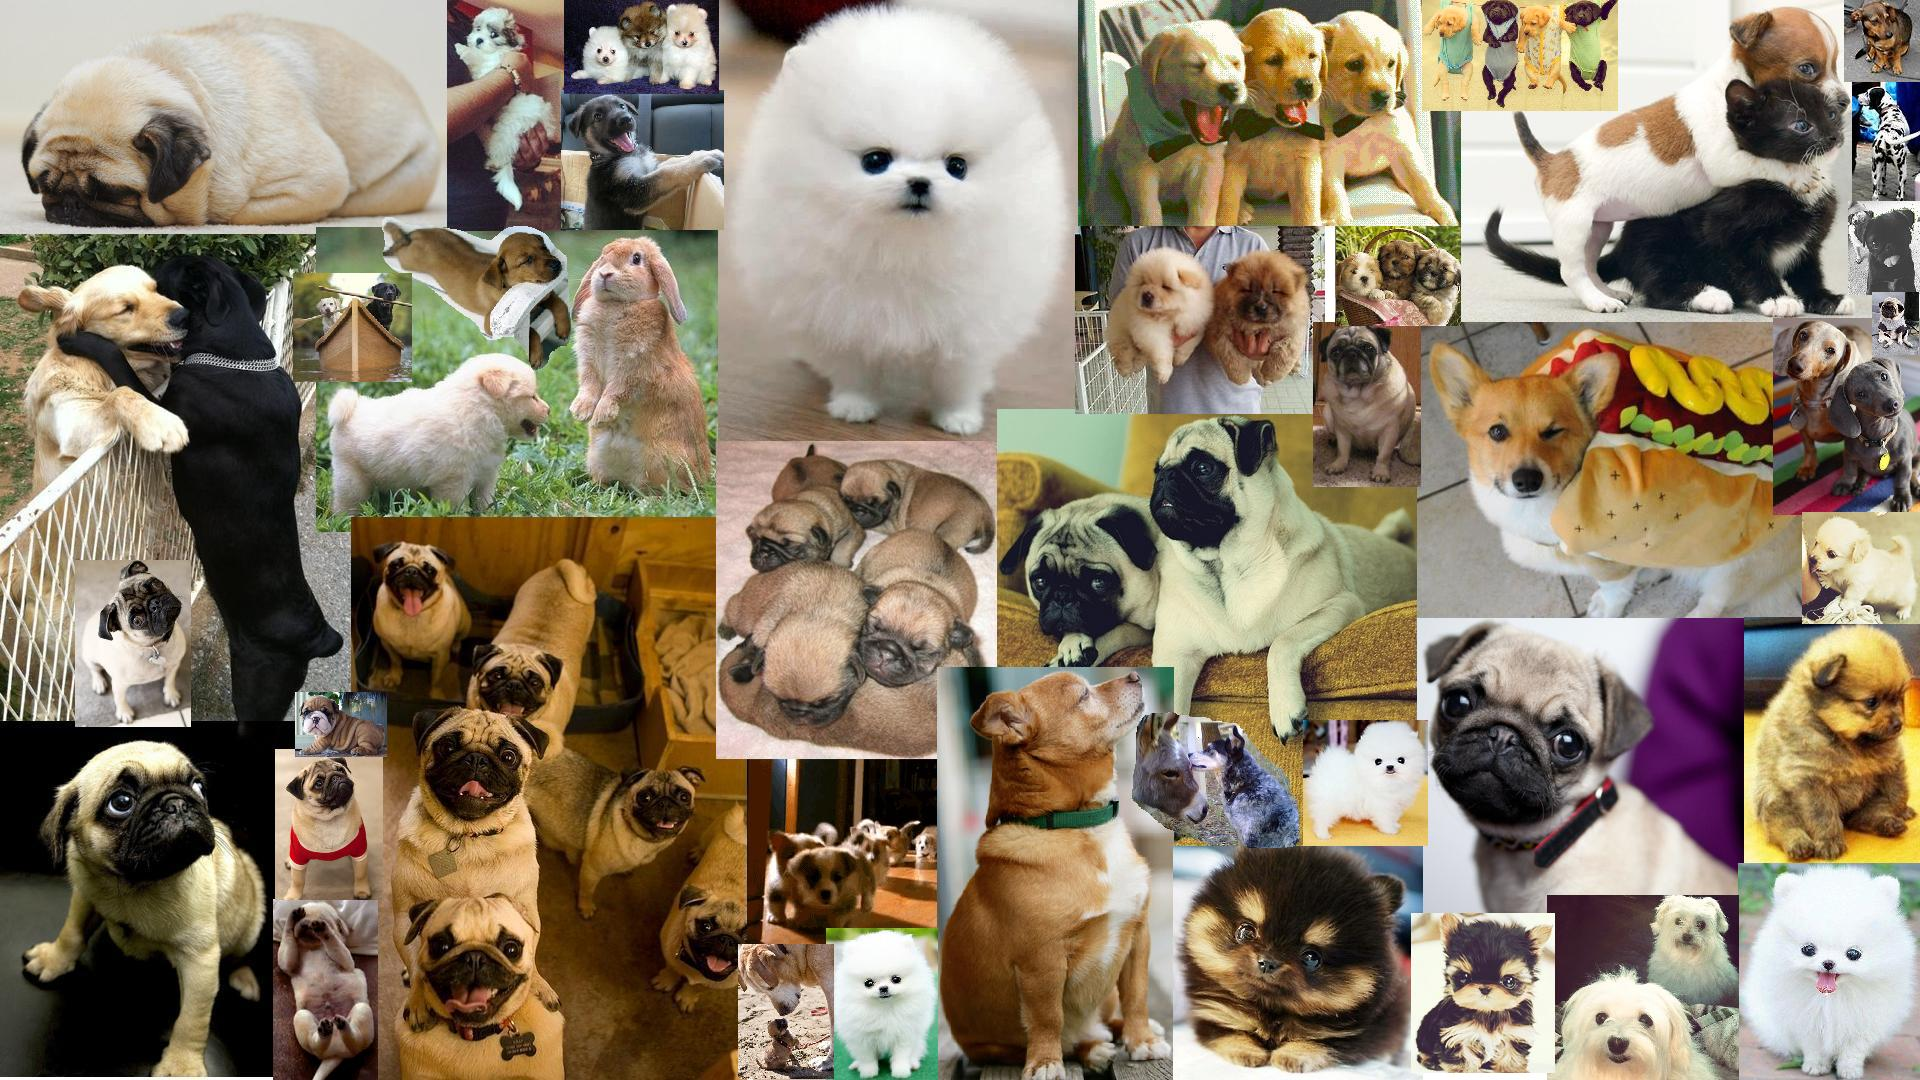 puppydog collage wallpaper by foggypebble puppydog collage wallpaper by foggypebble